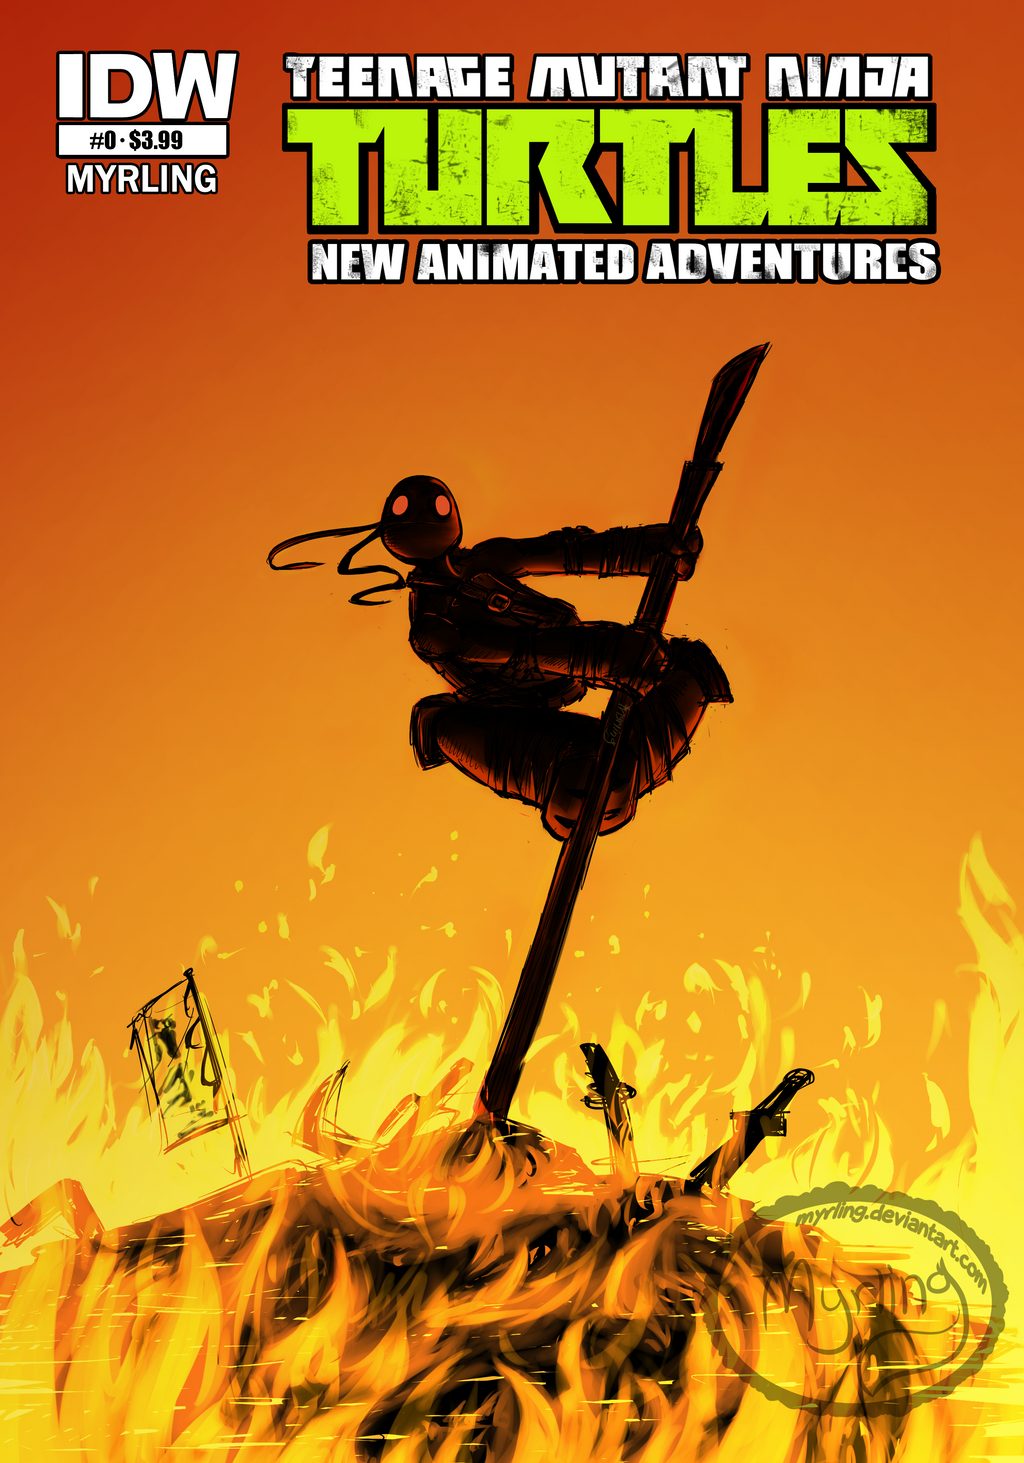 Comic Book Cover Artist Wanted : Tmnt comic book cover art by myrling on deviantart